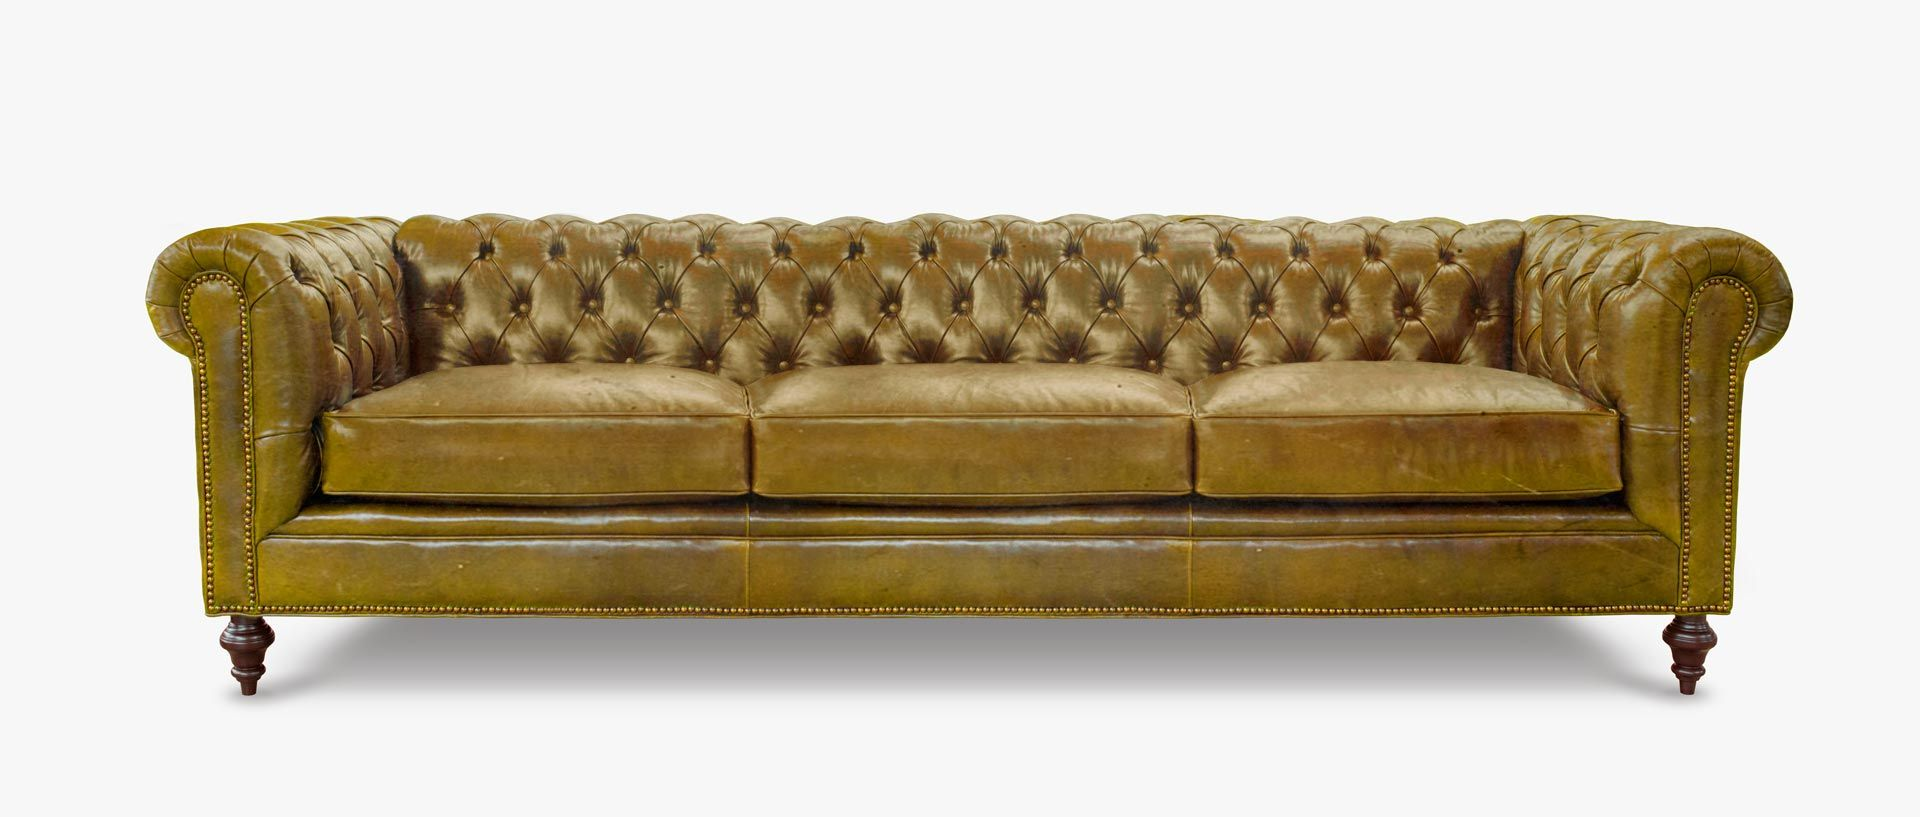 The Fitzgerald Custom Classic Chesterfield Sofas More Chesterfield Style Sofa Vintage Sofa Sofa